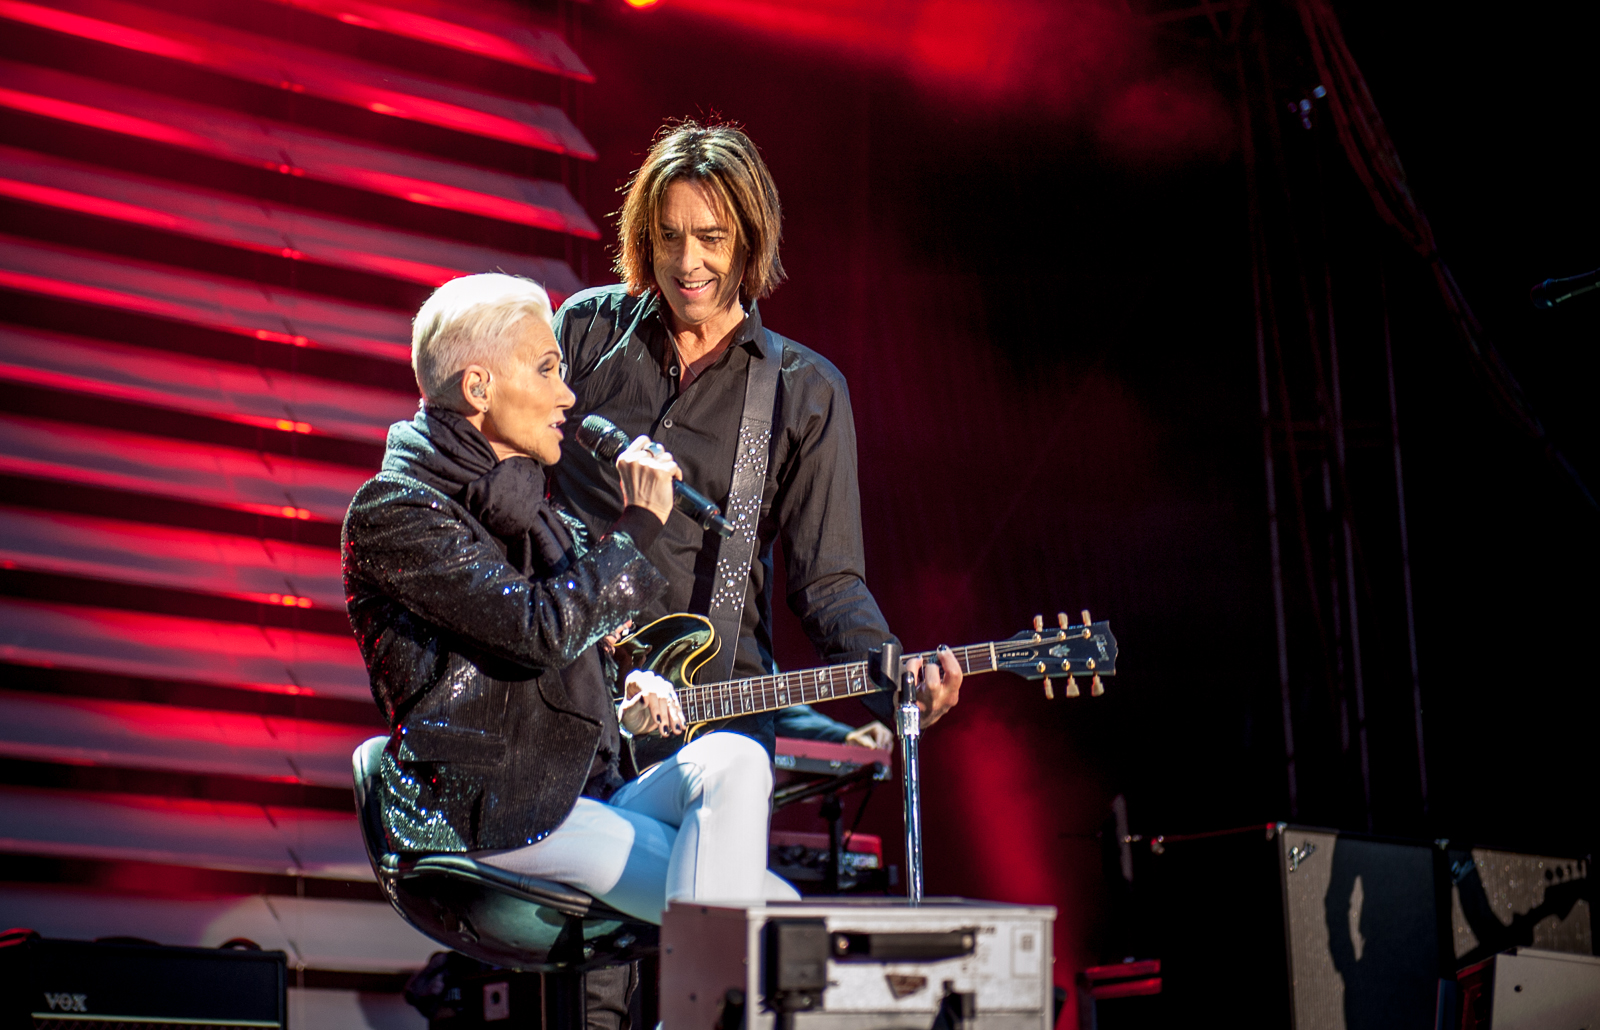 Roxette in Dresden 2015, photo by Kai-Uwe Heinze for The Daily Roxette, click to enlarge